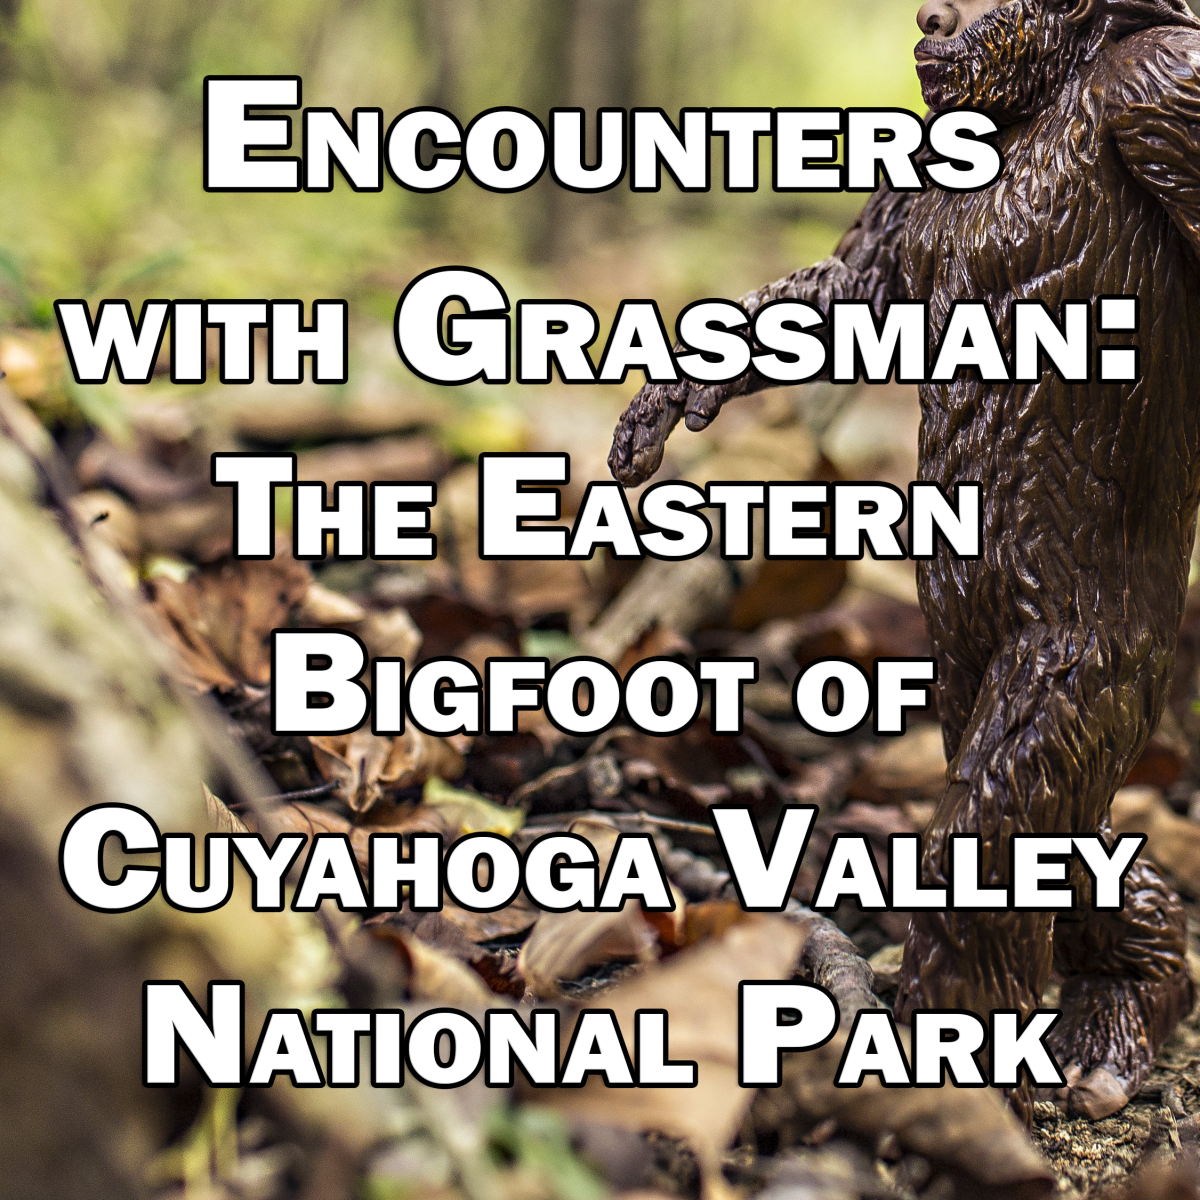 Encounters with Grassman: The Eastern Bigfoot of Cuyahoga Valley National Park